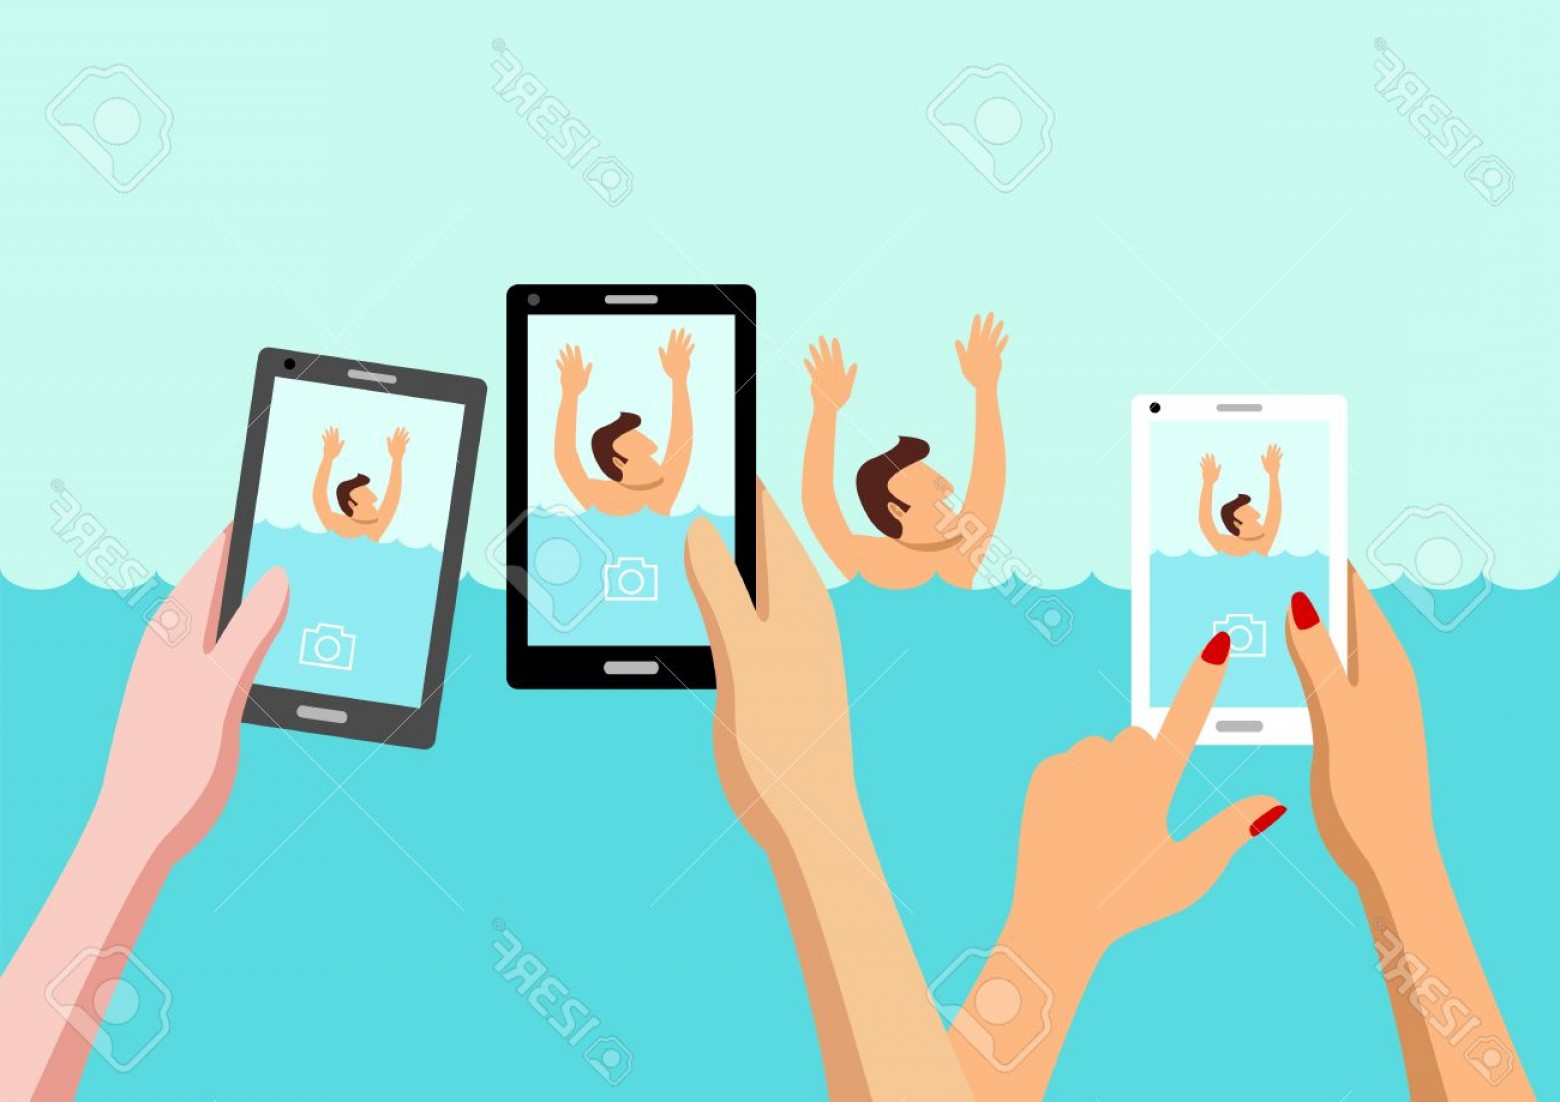 Man Drowning Vector: Photostock Vector Simple Cartoon Of People Taking Photo Of Drowning Man Concept For Ignorance Social Media Effect